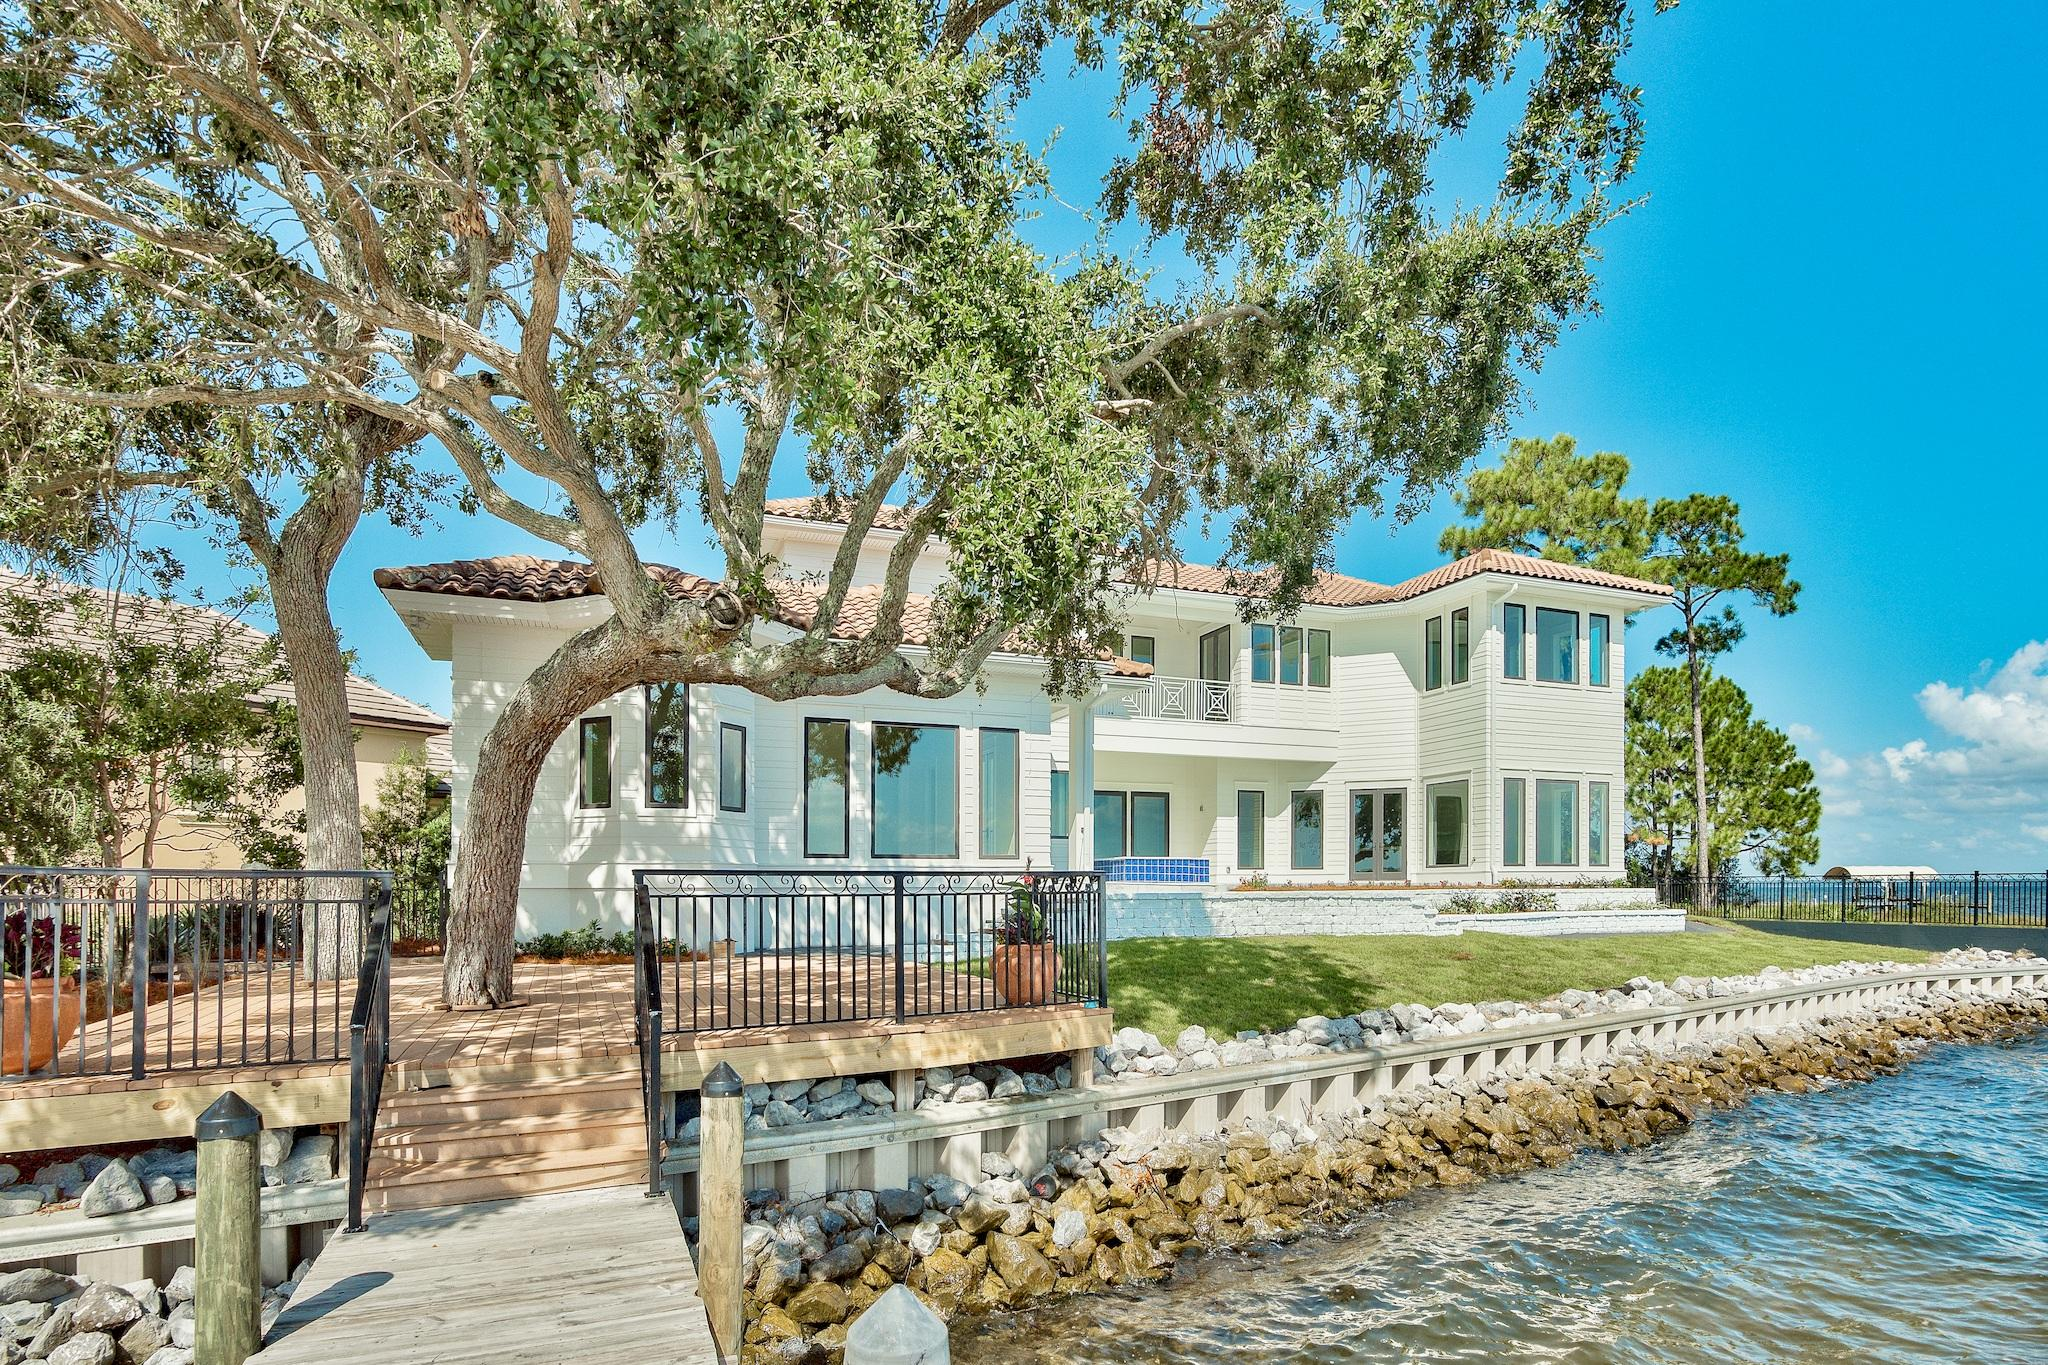 1807 DRIFTWOOD POINT ROAD, SANTA ROSA BEACH, FL 32459